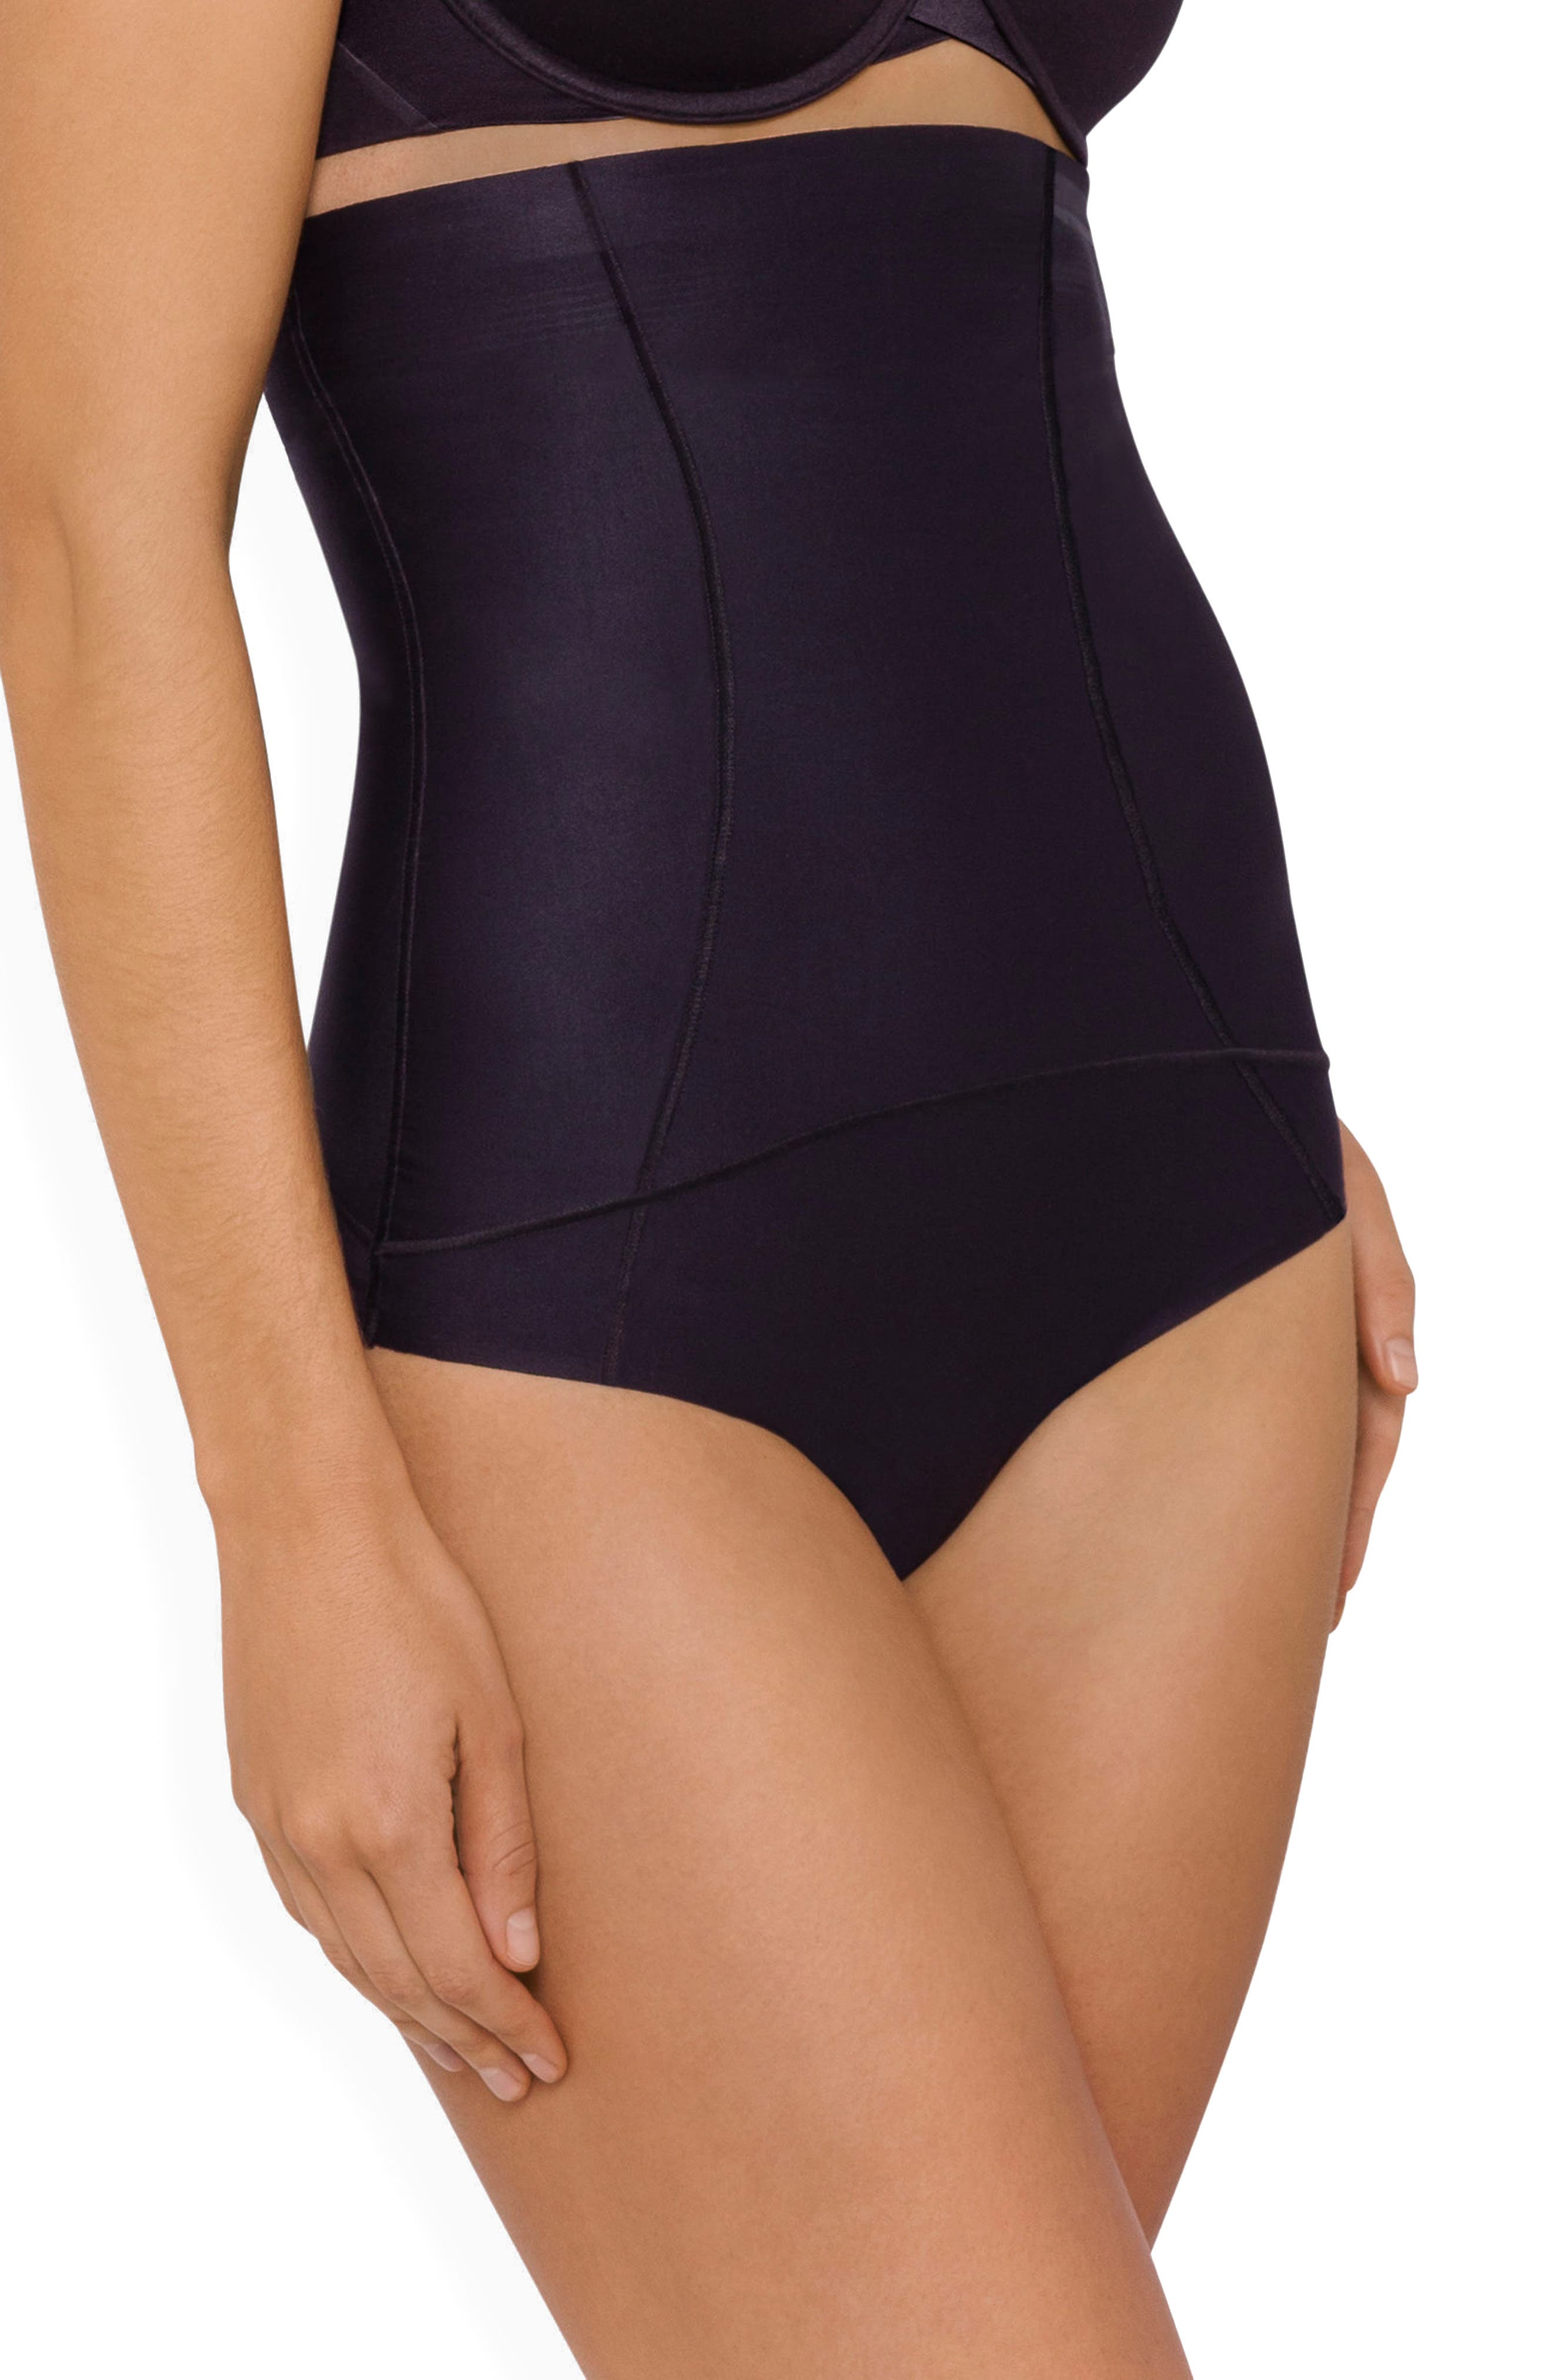 Body Architect High Waist Shaper Thong,                             Alternate thumbnail 3, color,                             Black